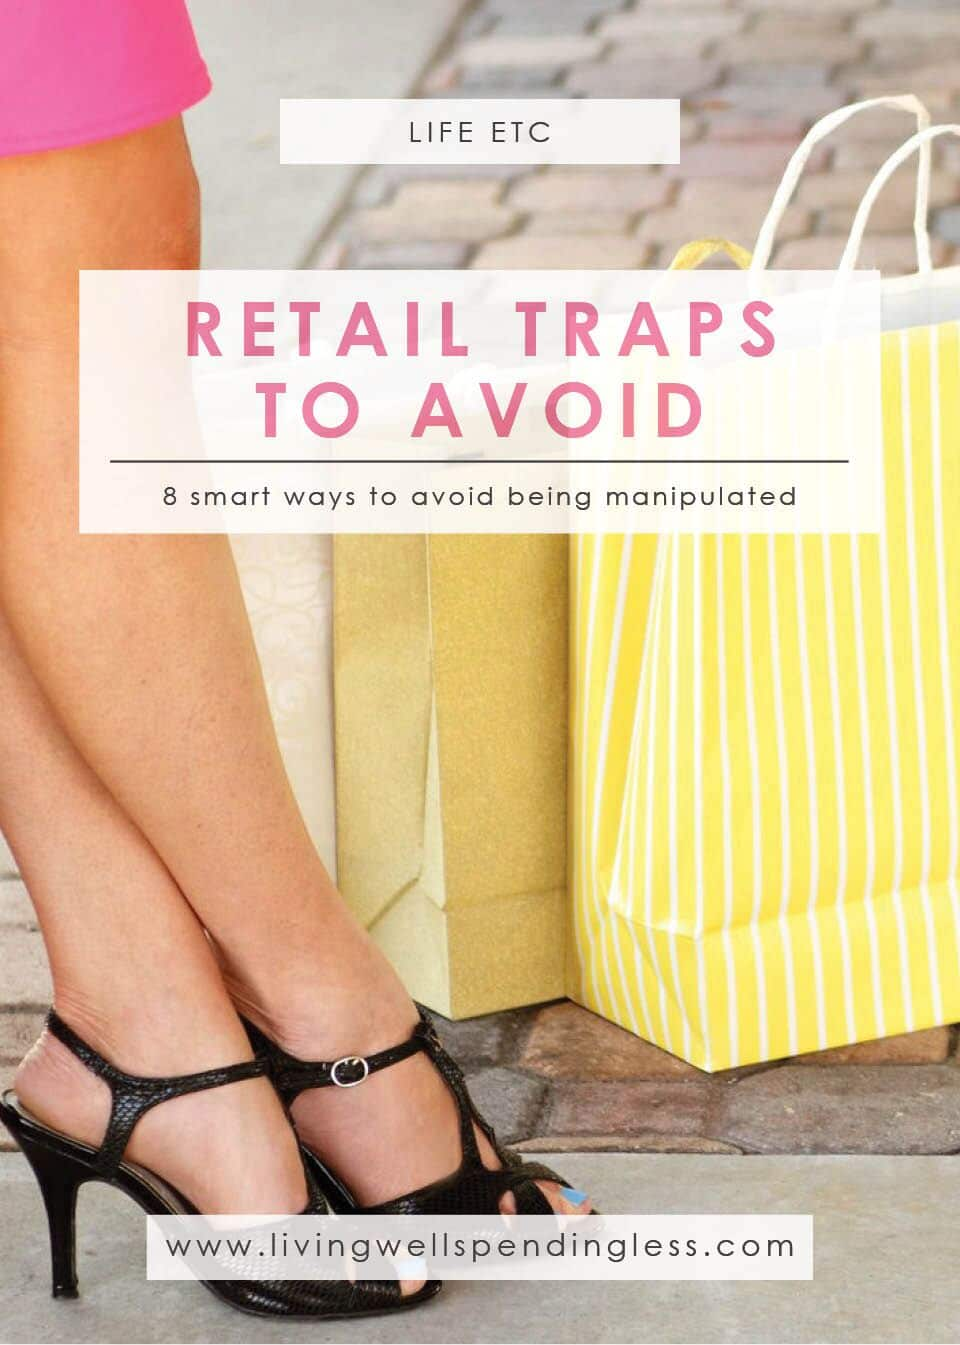 Smart ways to avoid retail traps.